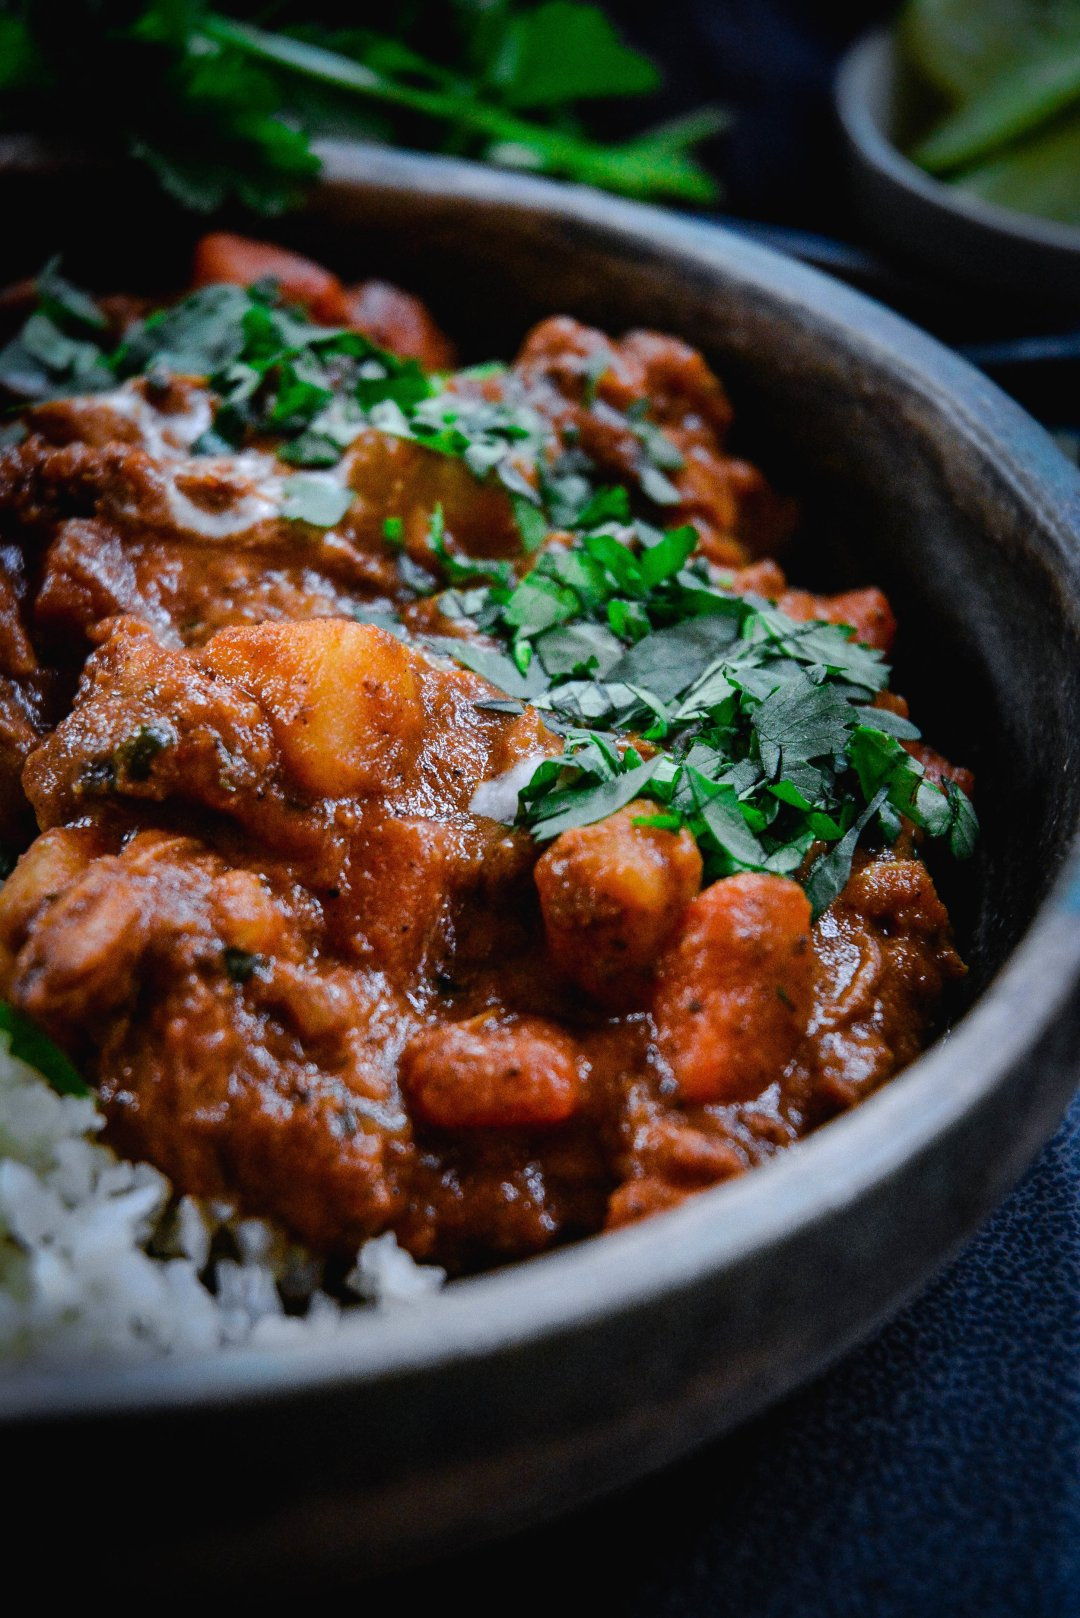 How to make a classic chicken tikka masala dish, paleo and whole 30? Coconut milk, of course. Check out this delicious and hearty recipe that's full of vegetables and tender chicken. It's warming, comforting and loaded with anti-inflammatory spices. #paleofood #curry #paleocurry #paleochickencurry #chickentikkamasala #calmeats #whole30curry #dinner #chicken #whole30recipes #paleorecipes #howtomakecurry #easycurry #chikenrecipes